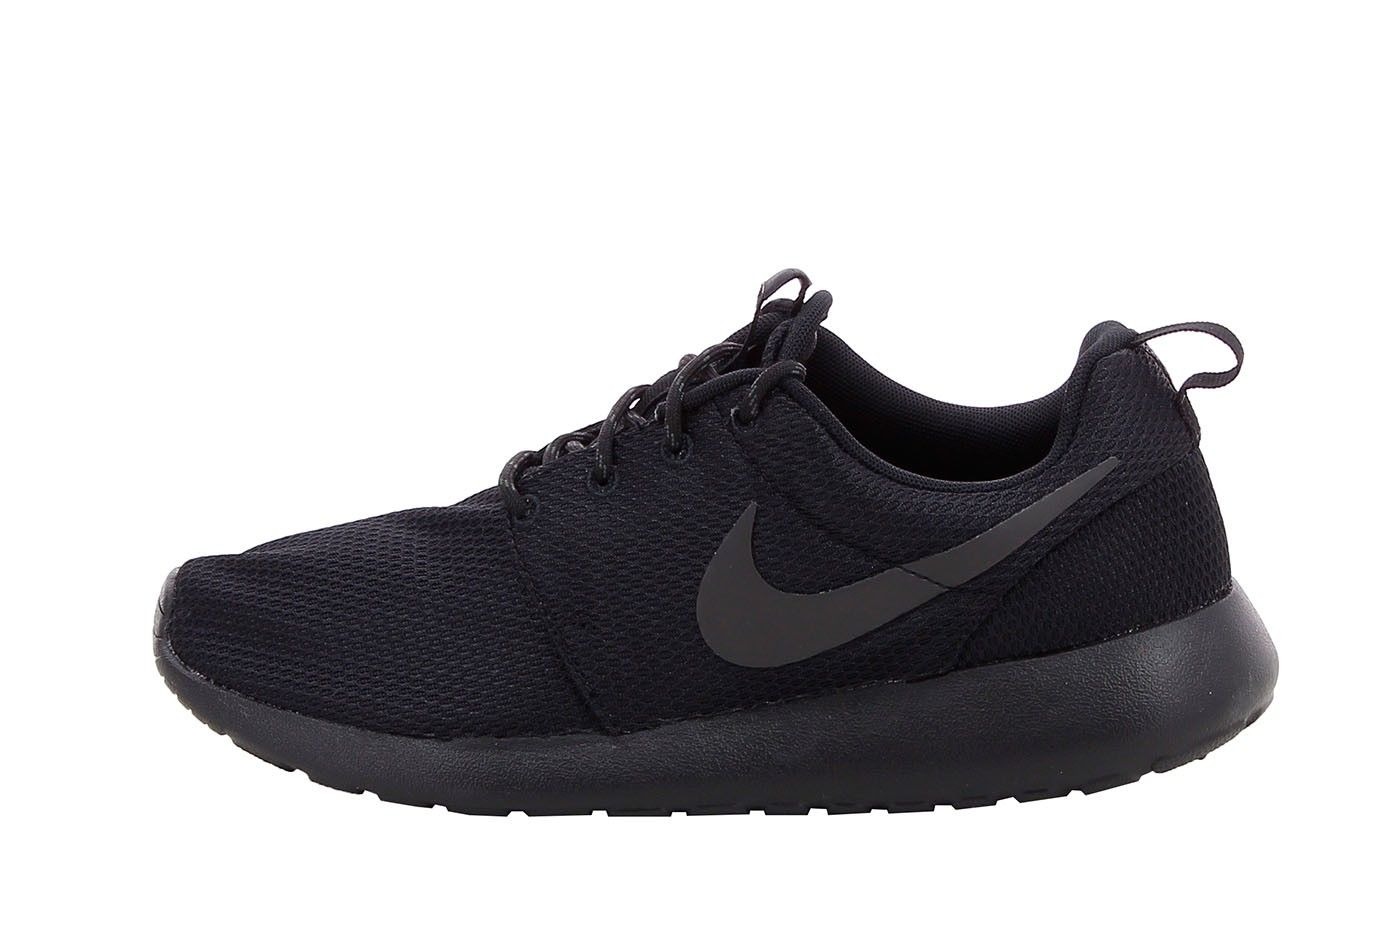 new style 34ce3 d2be4 Basket Nike Roshe Run - 511882-096 - Pegashoes